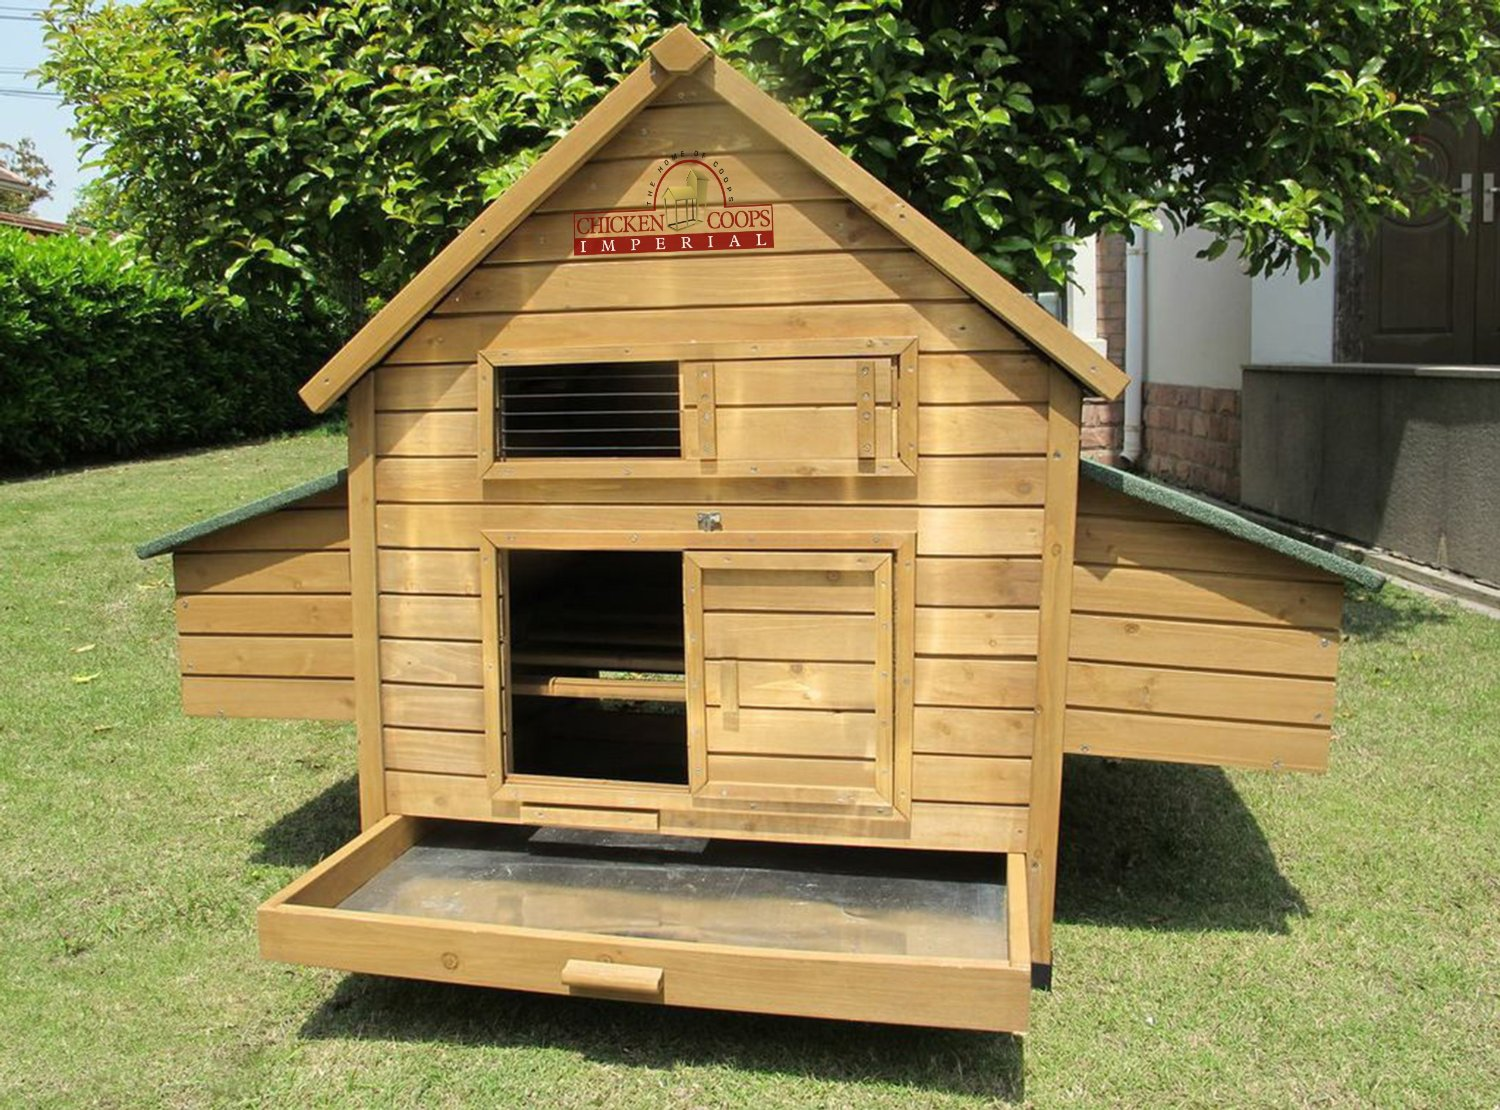 Review Chicken Coops Imperial Marlborough For 5 To 7